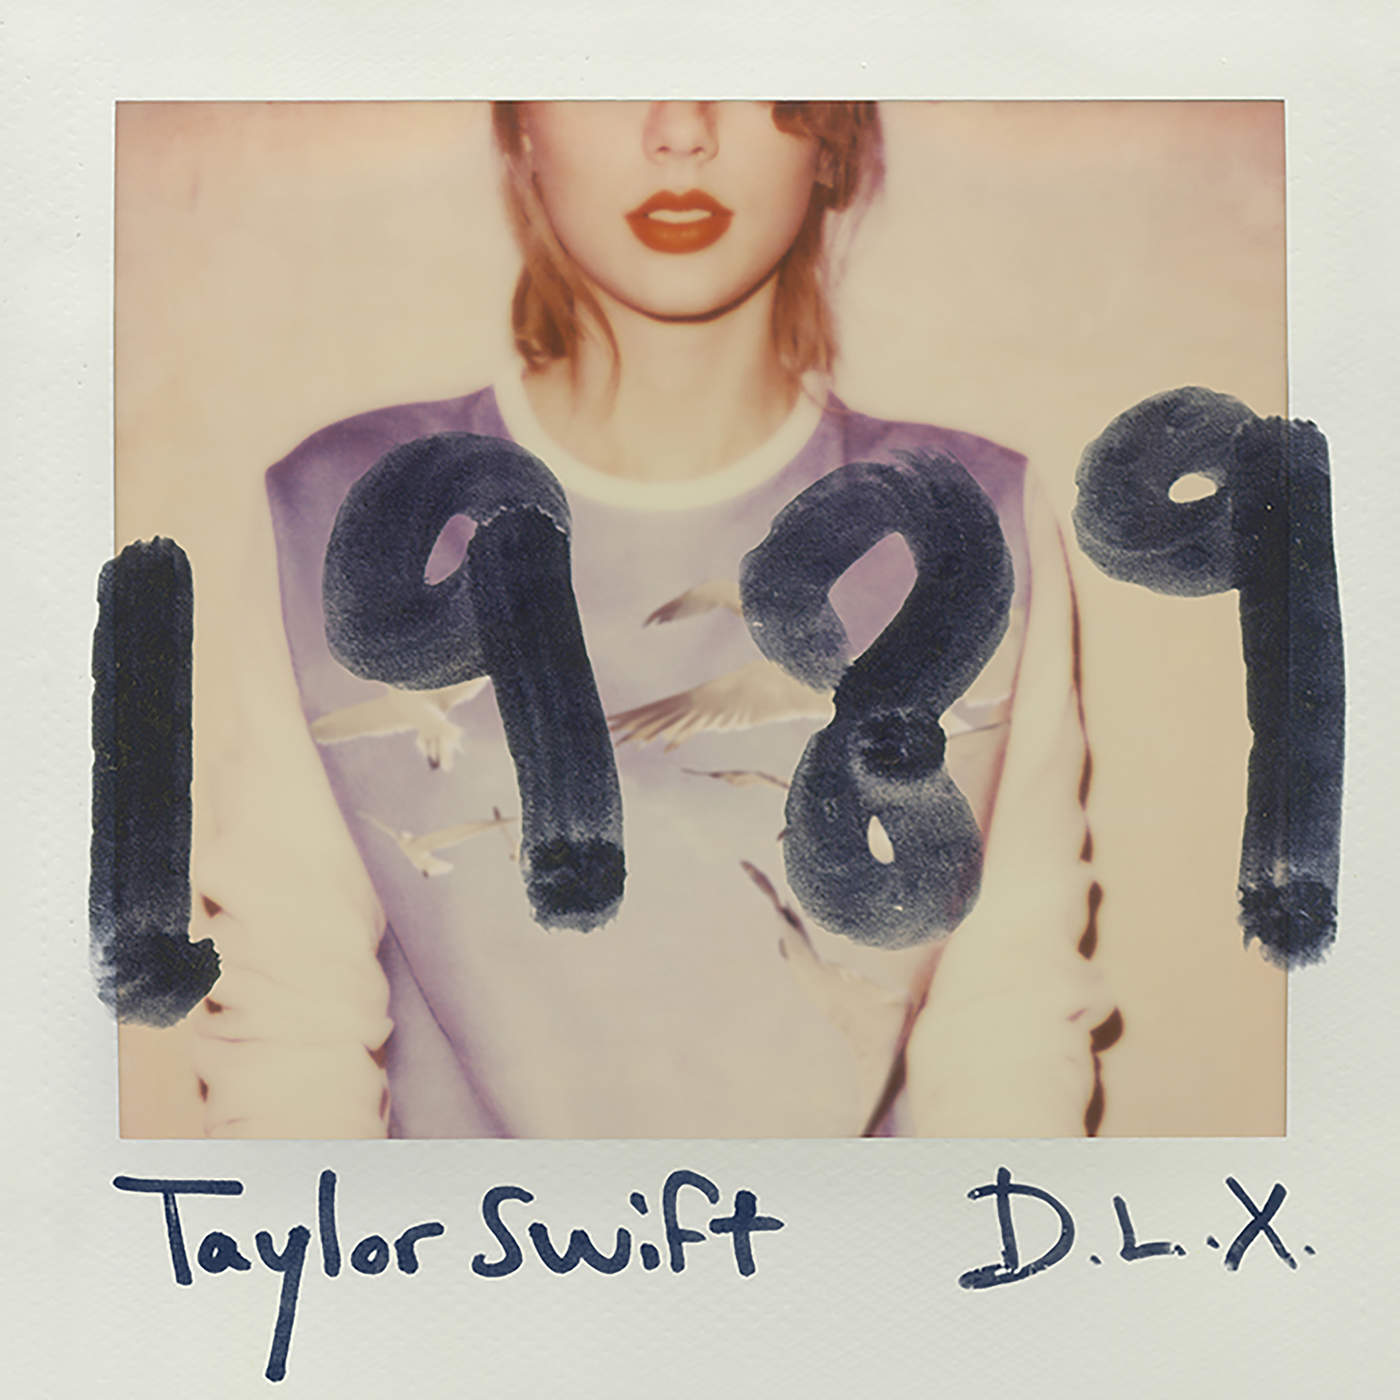 Taylor Swift - Shake It Off - Single Cover